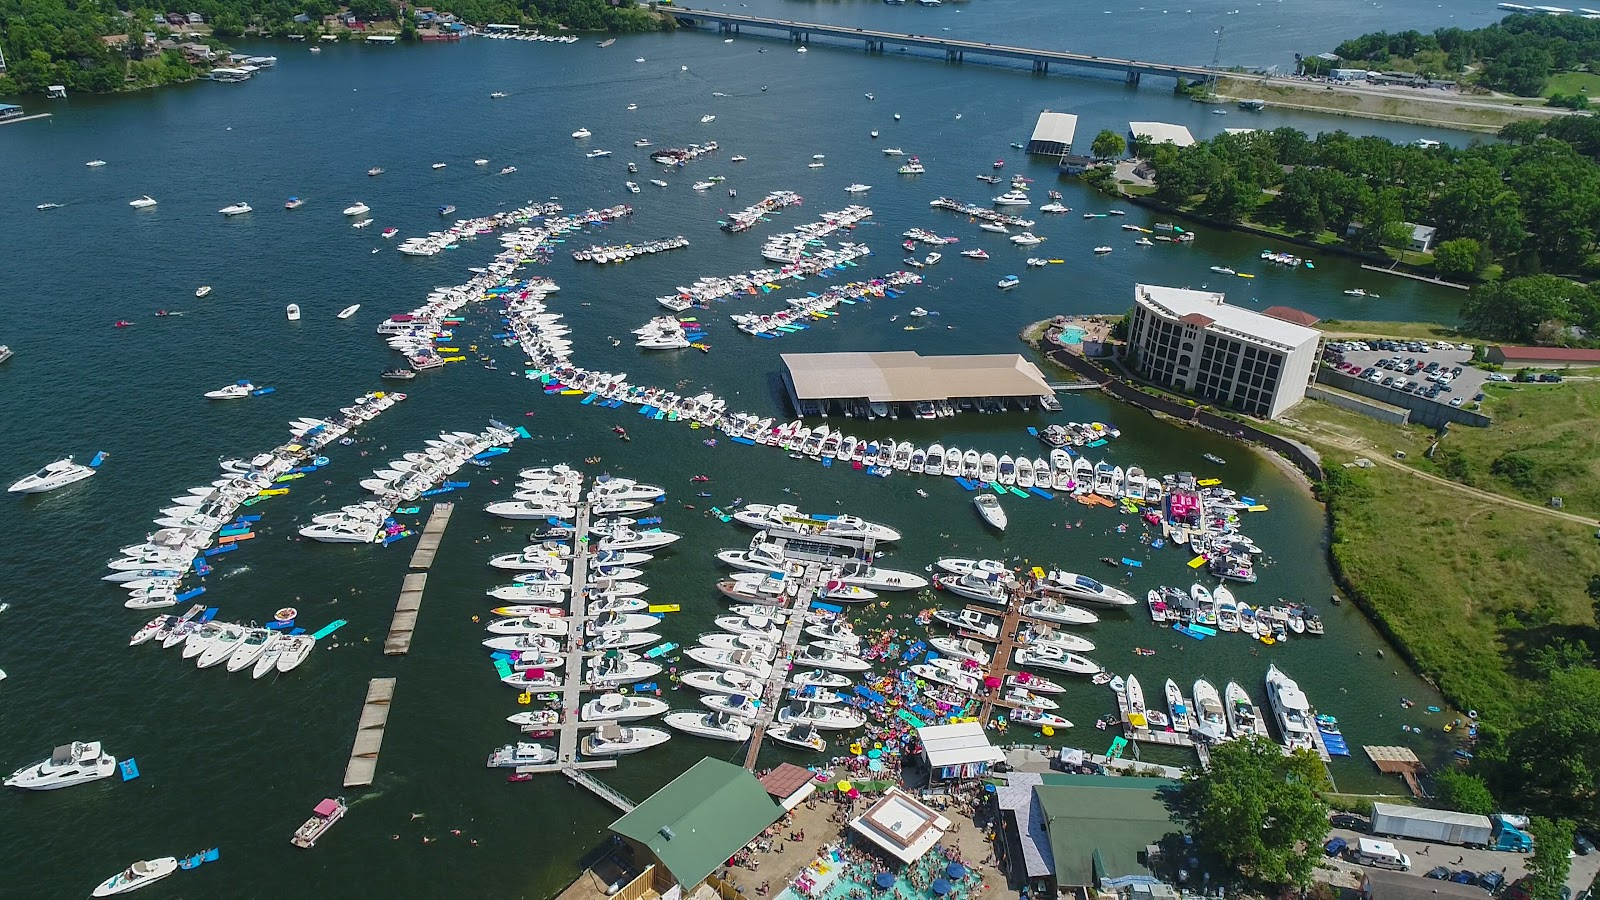 aquapalooza lake of the ozarks